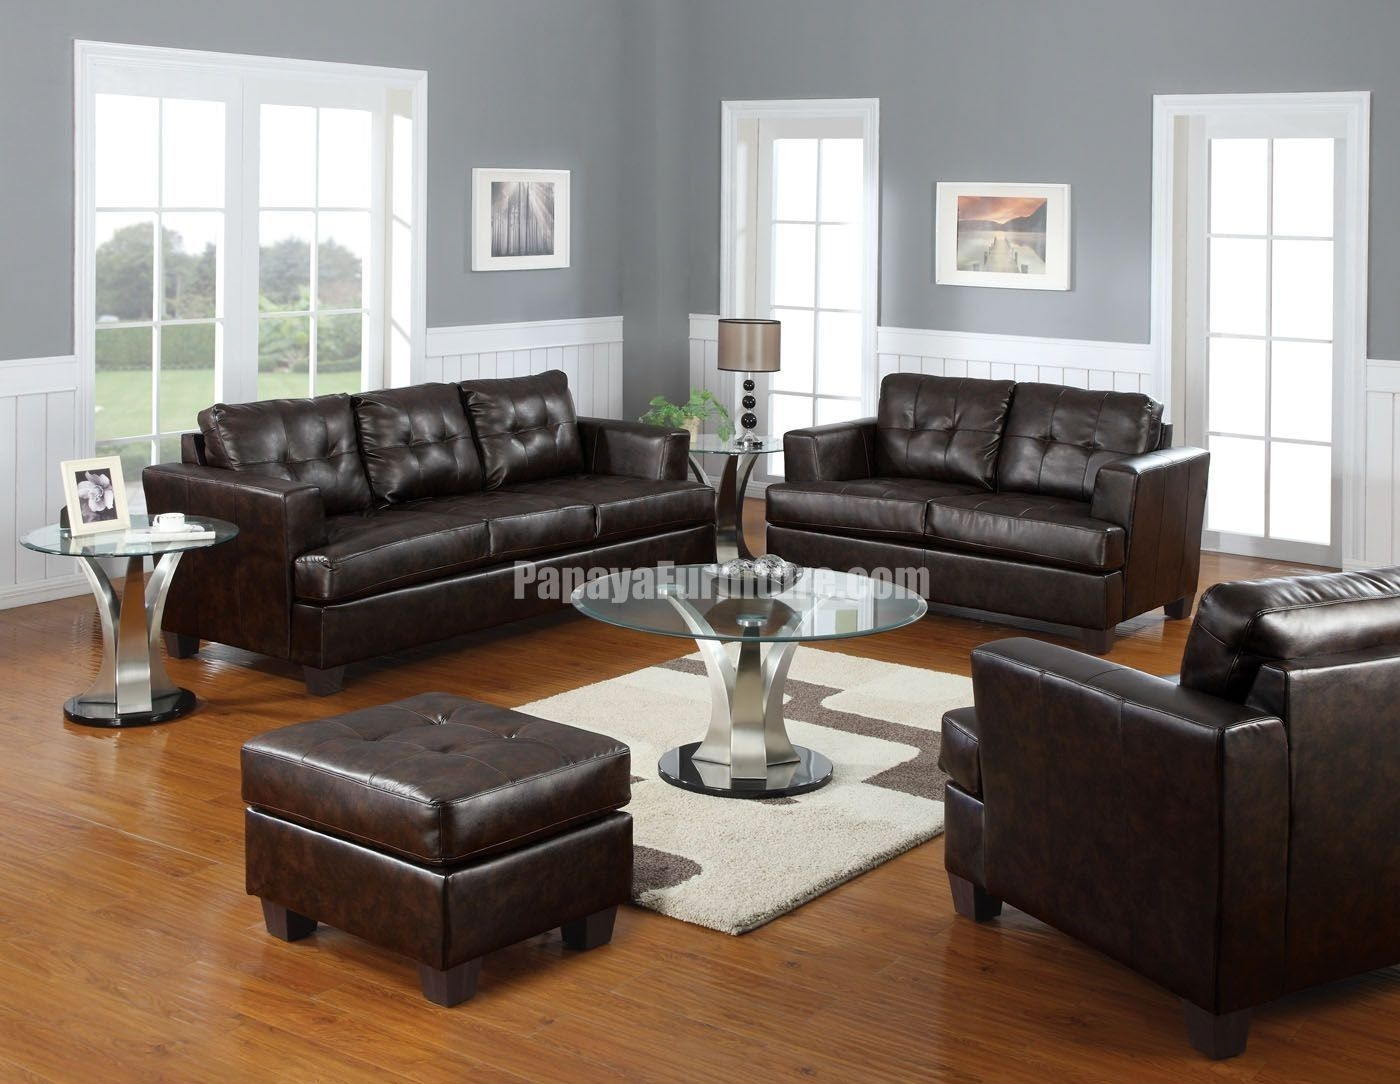 Dark Brown Couch Decorating Ideas  Dark Brown Leather Couches Dark Brown Leather Couches